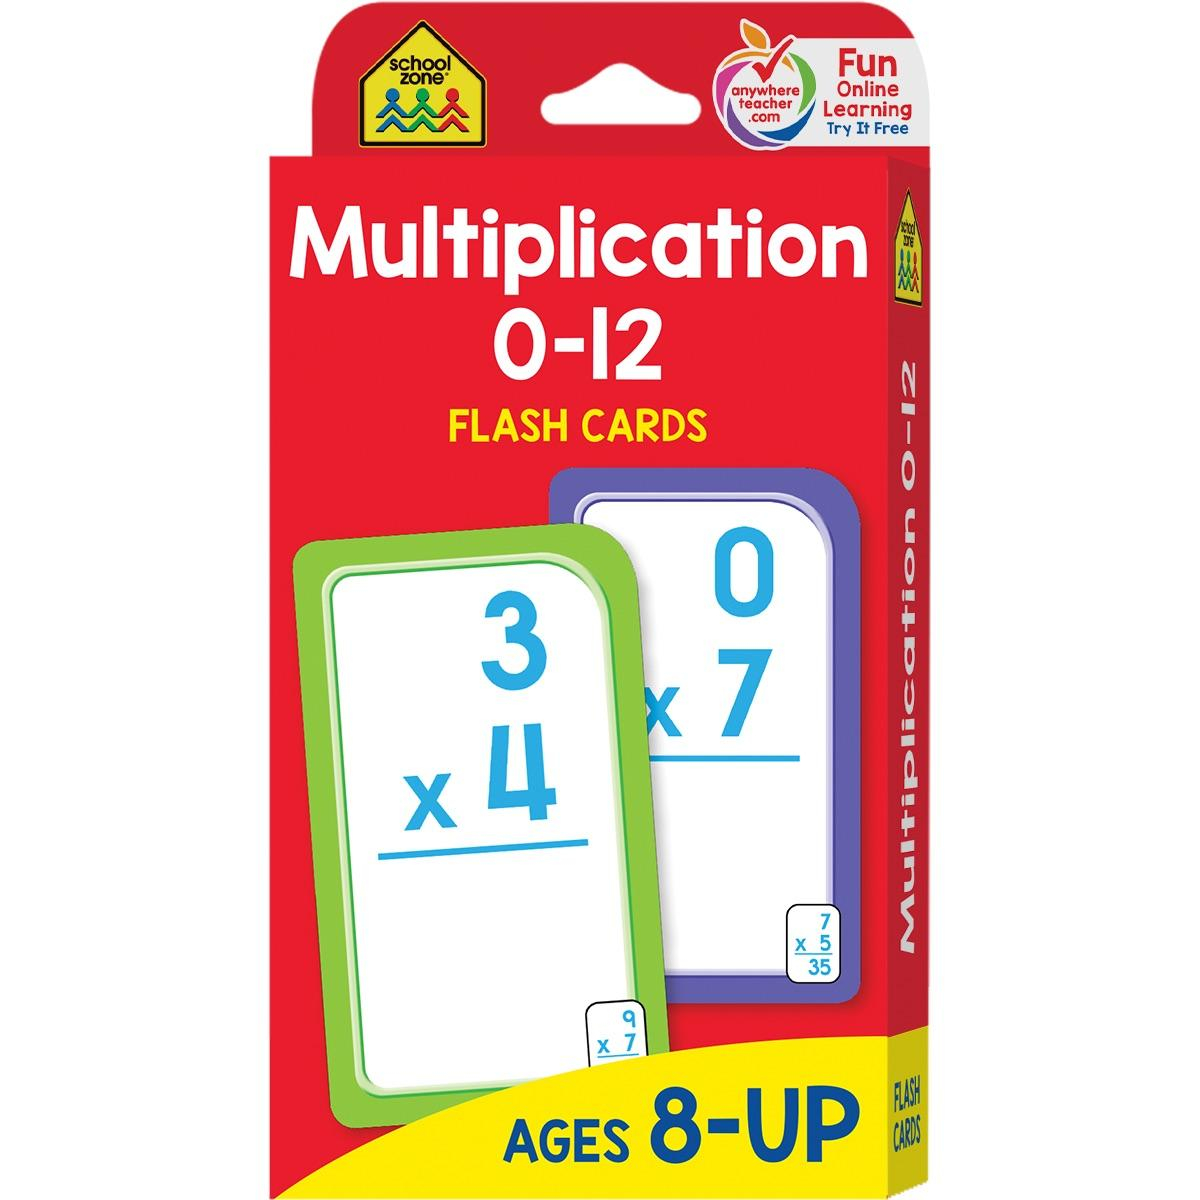 Flash Card: Multiplication 0 -12: Flashcards (Other) - Walmart